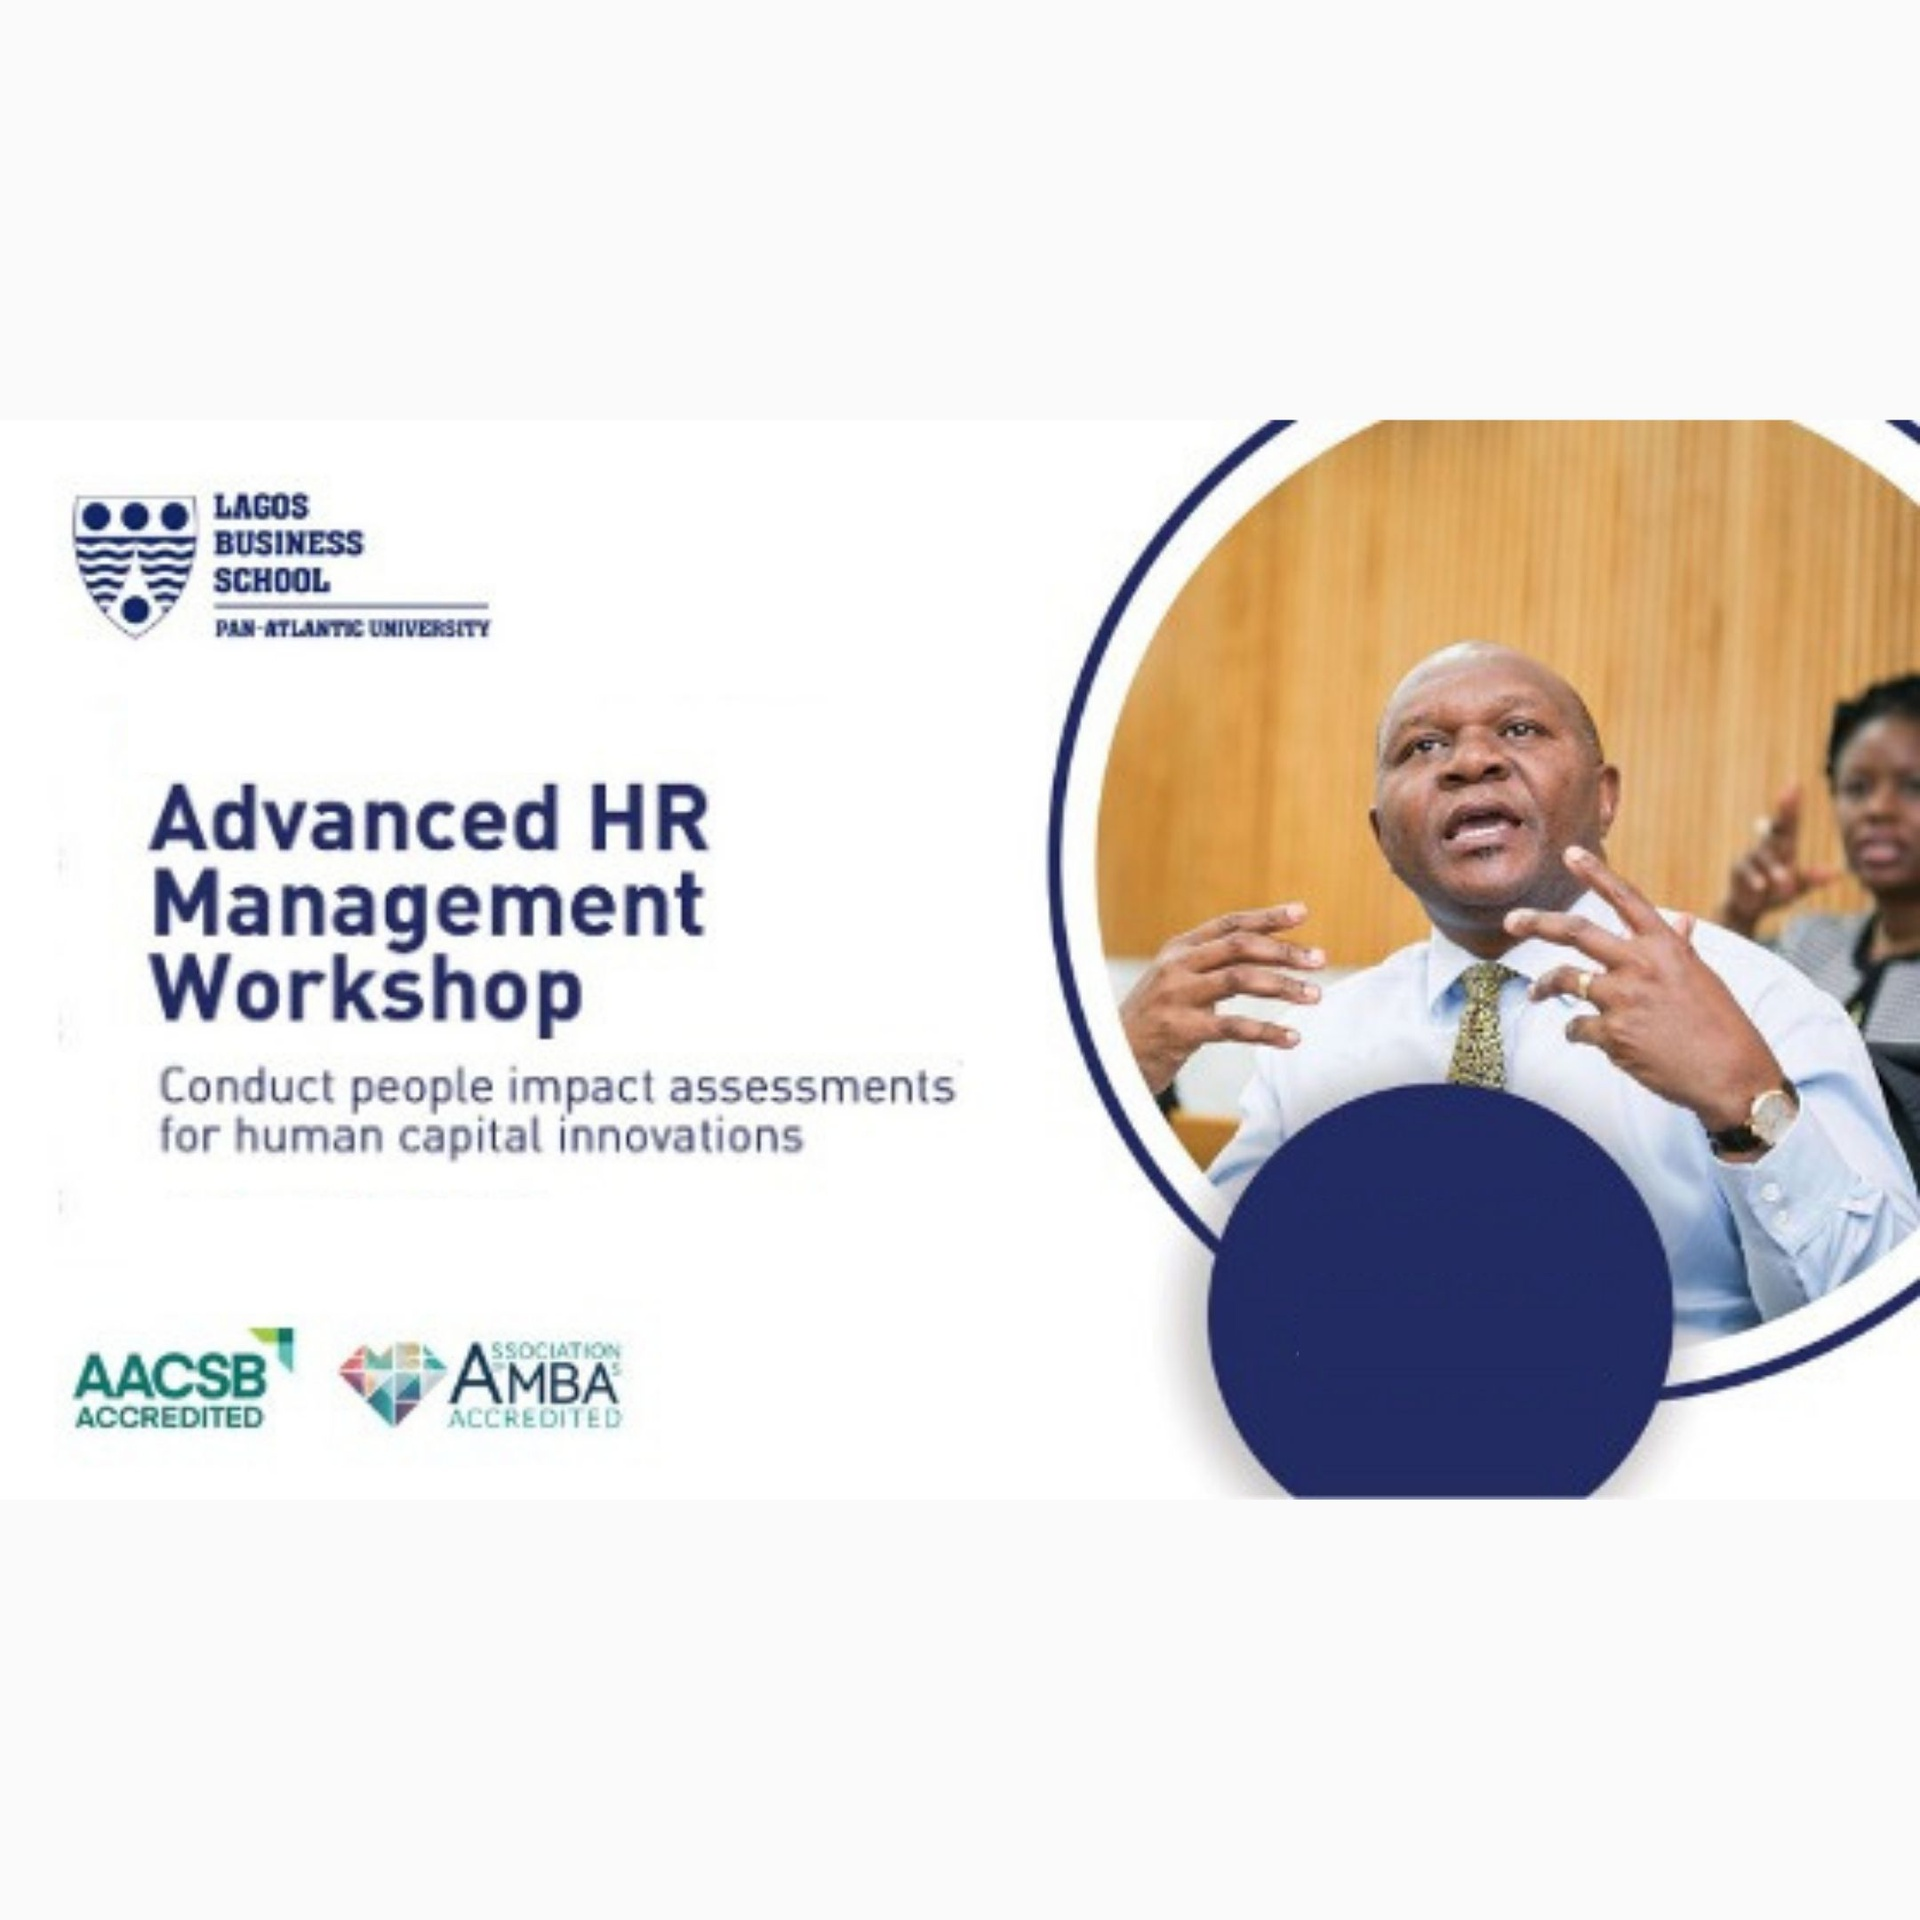 Advanced HR Management Workshop